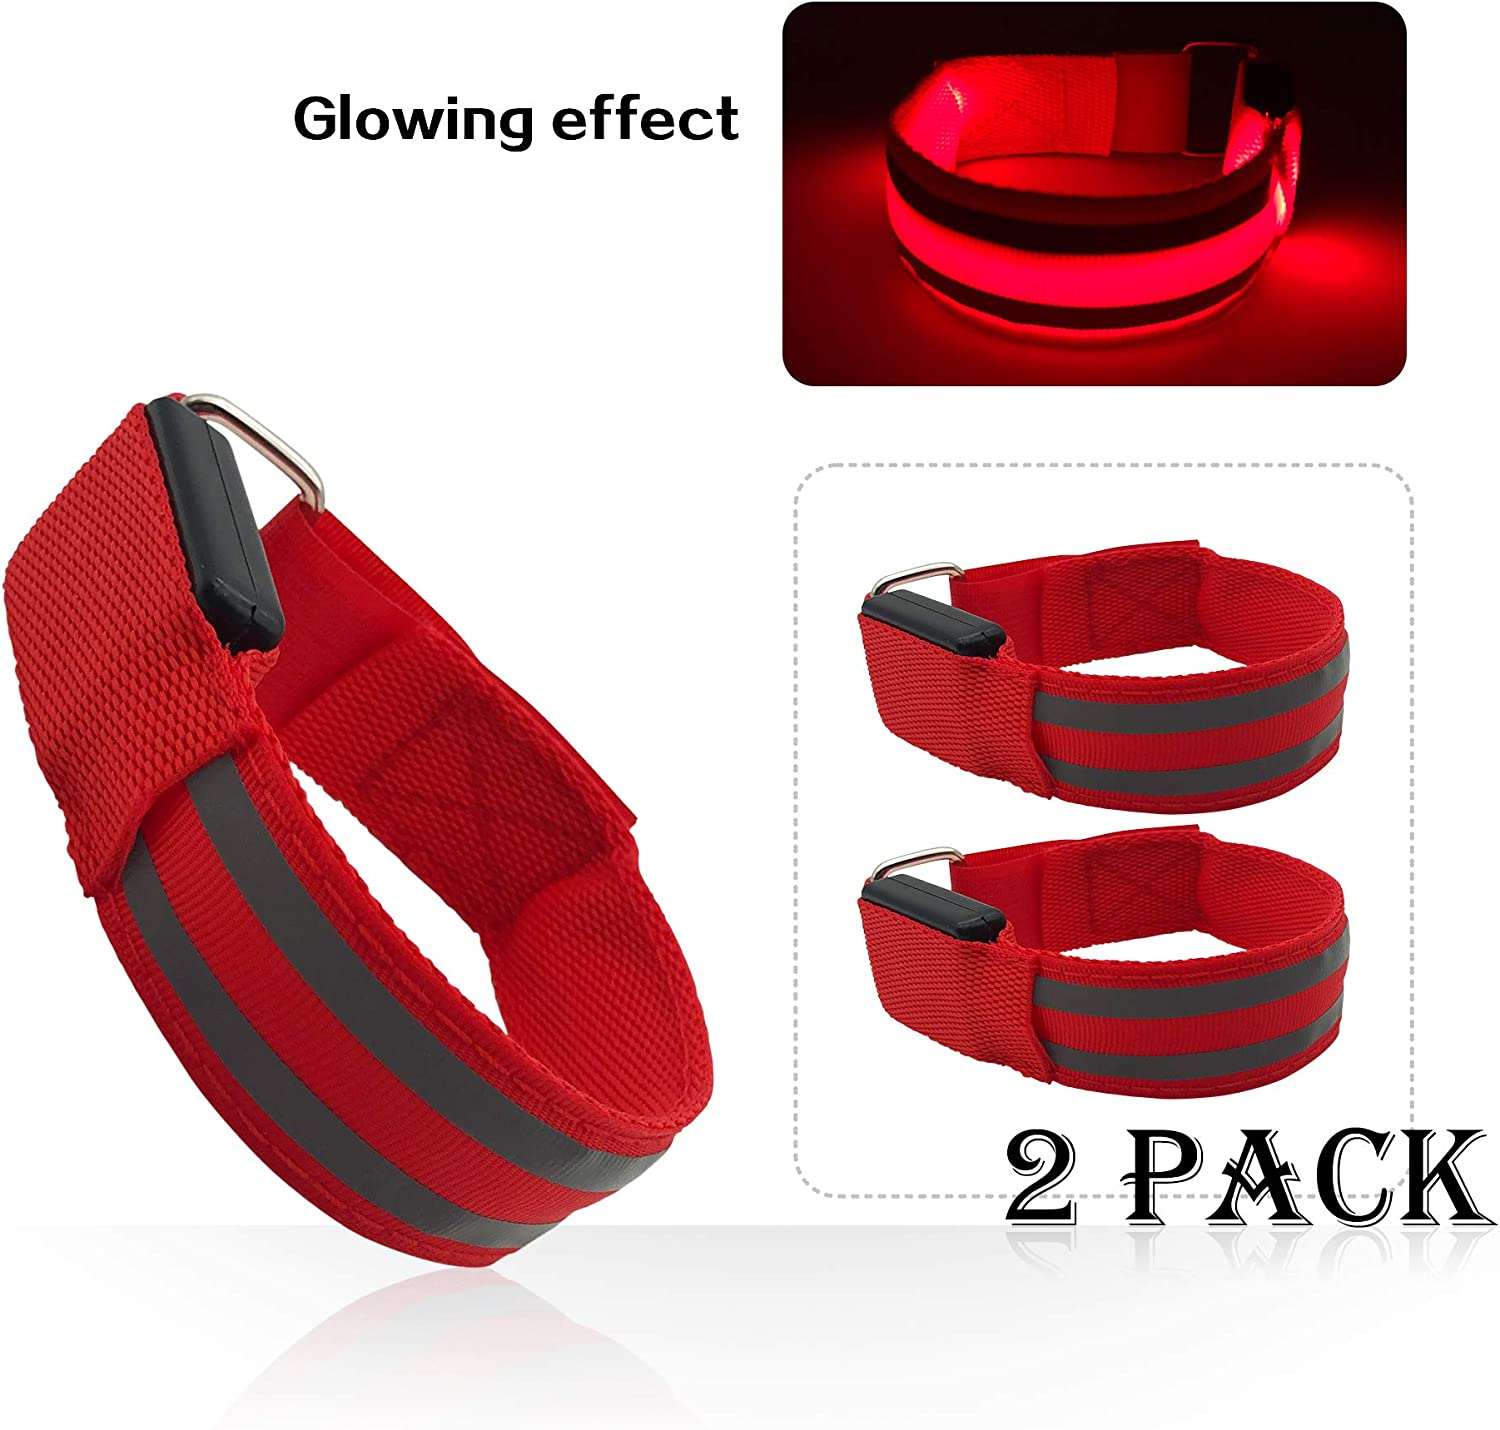 2 Pack LED Armband USB Chargeable for Running Cycling Exercising Glow Light up in Dark Night Running Gear Safety Reflective Sports Event Wristbands